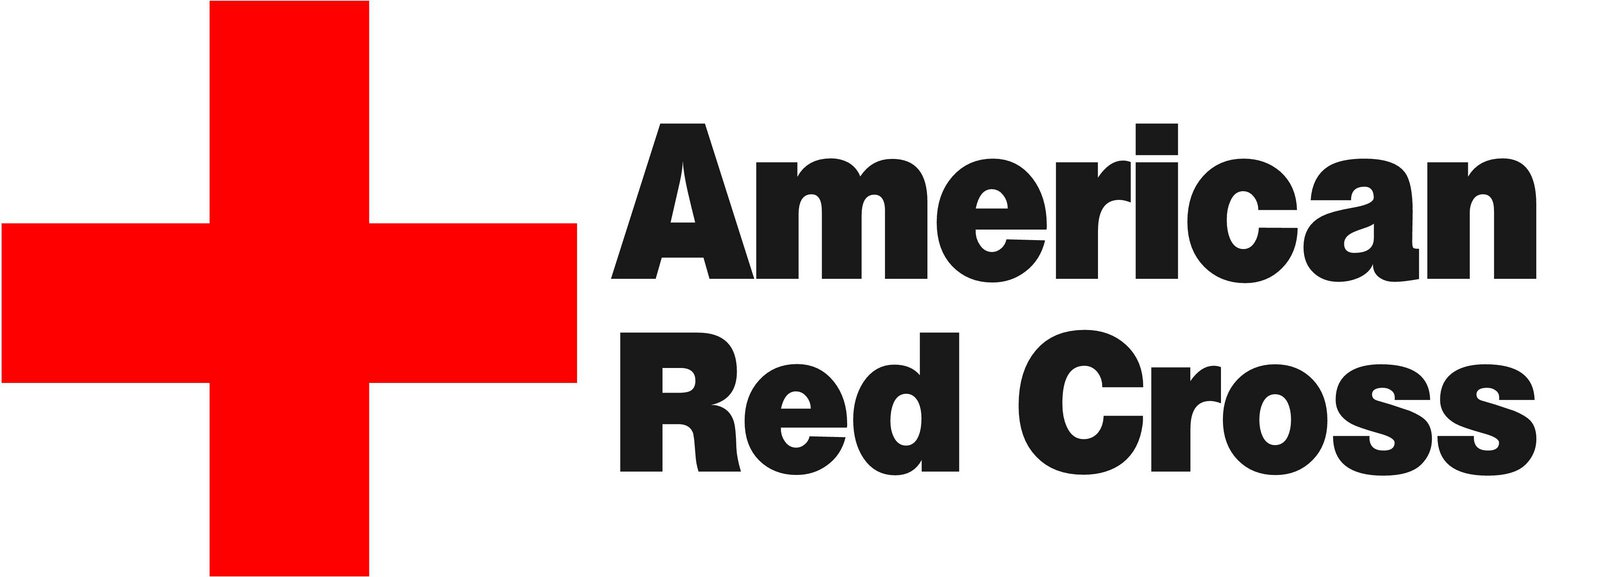 American_Red_Cross.jpg